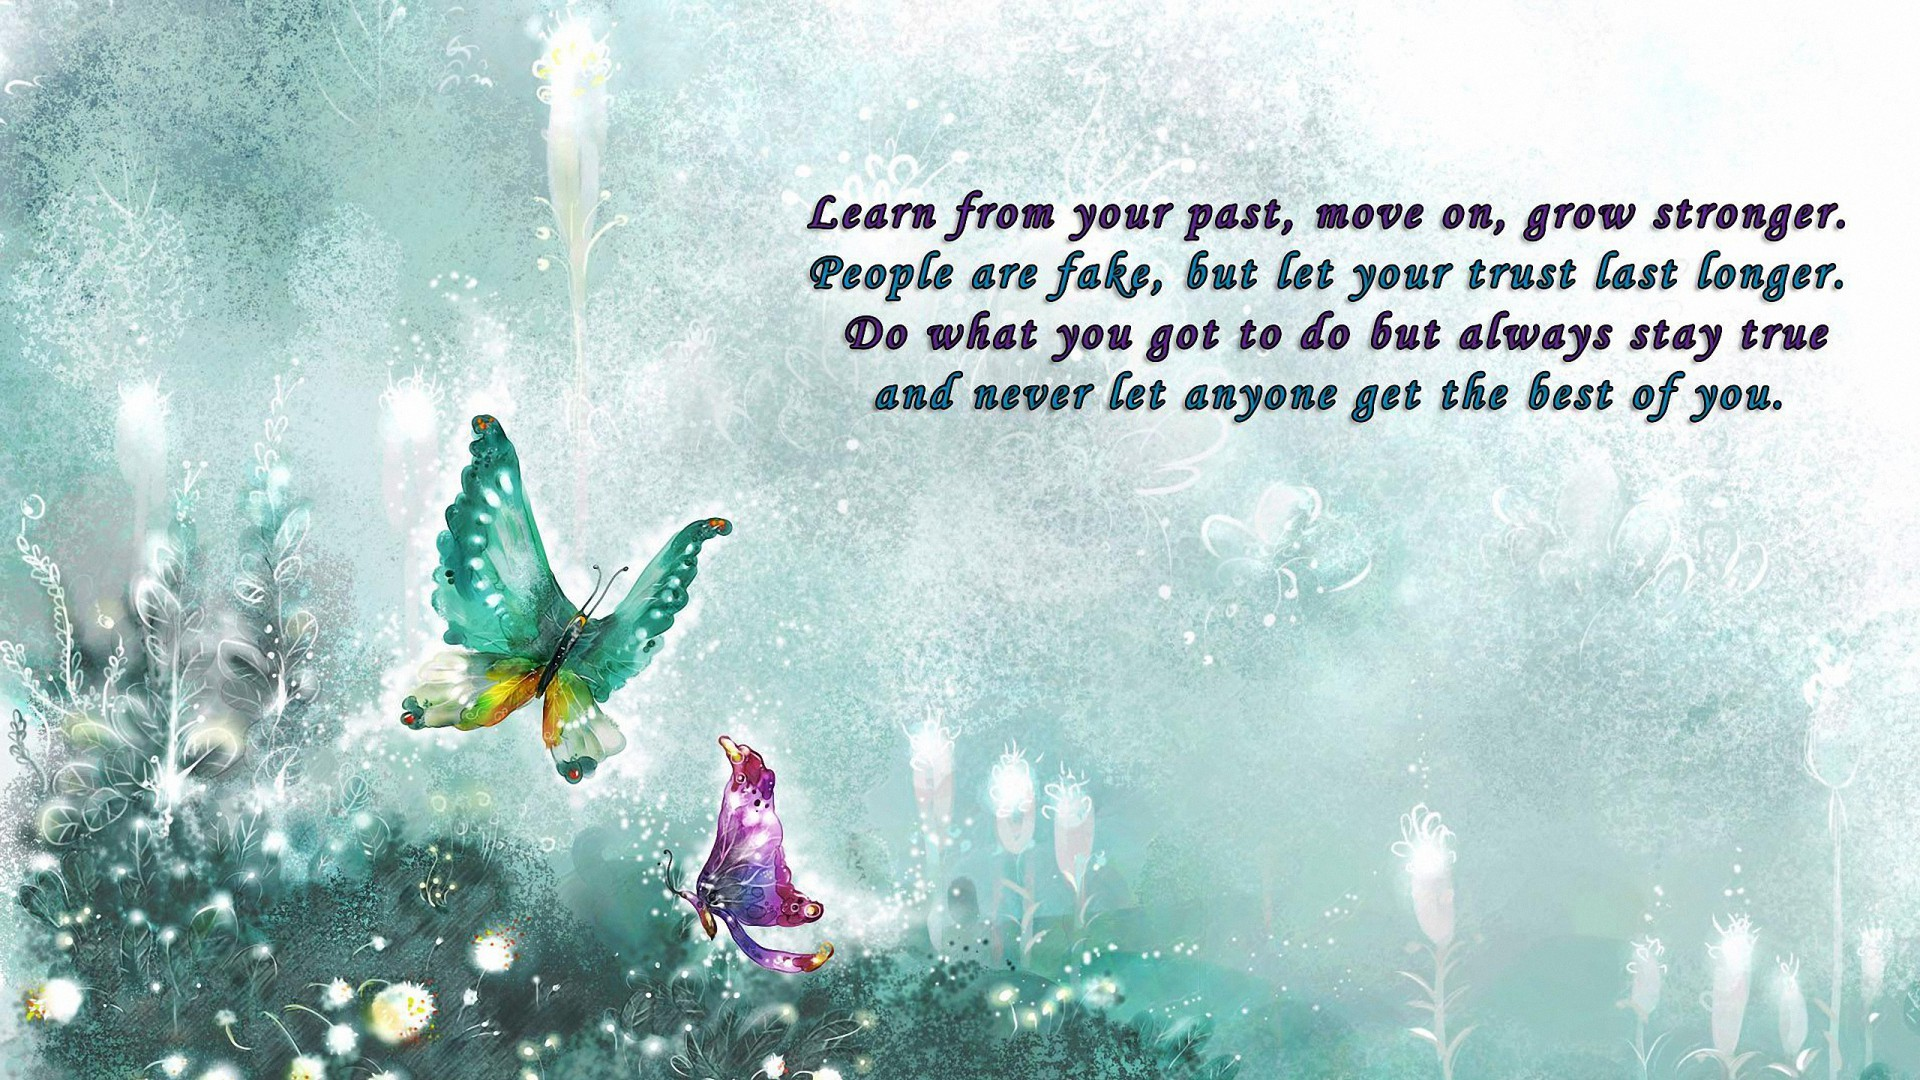 Buddha Hd Wallpaper 1080p Quote Desktop Backgrounds 60 Images